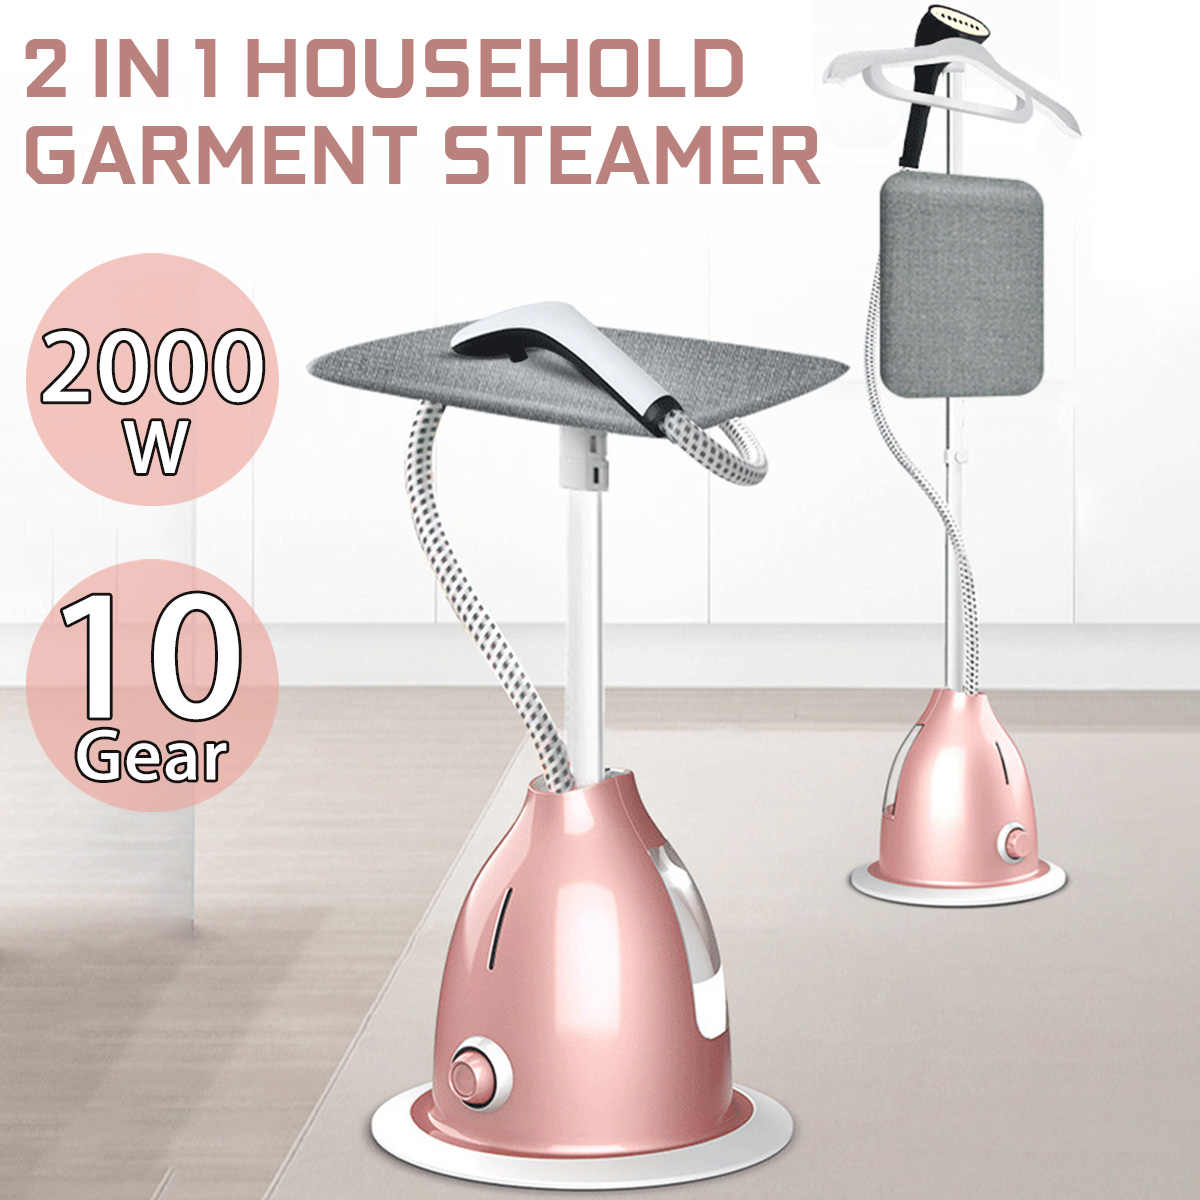 Steam Iron 2000W Garment steamer household handheld ironing machine 10 gear adjustable vertical flat steam iron clothes steamer